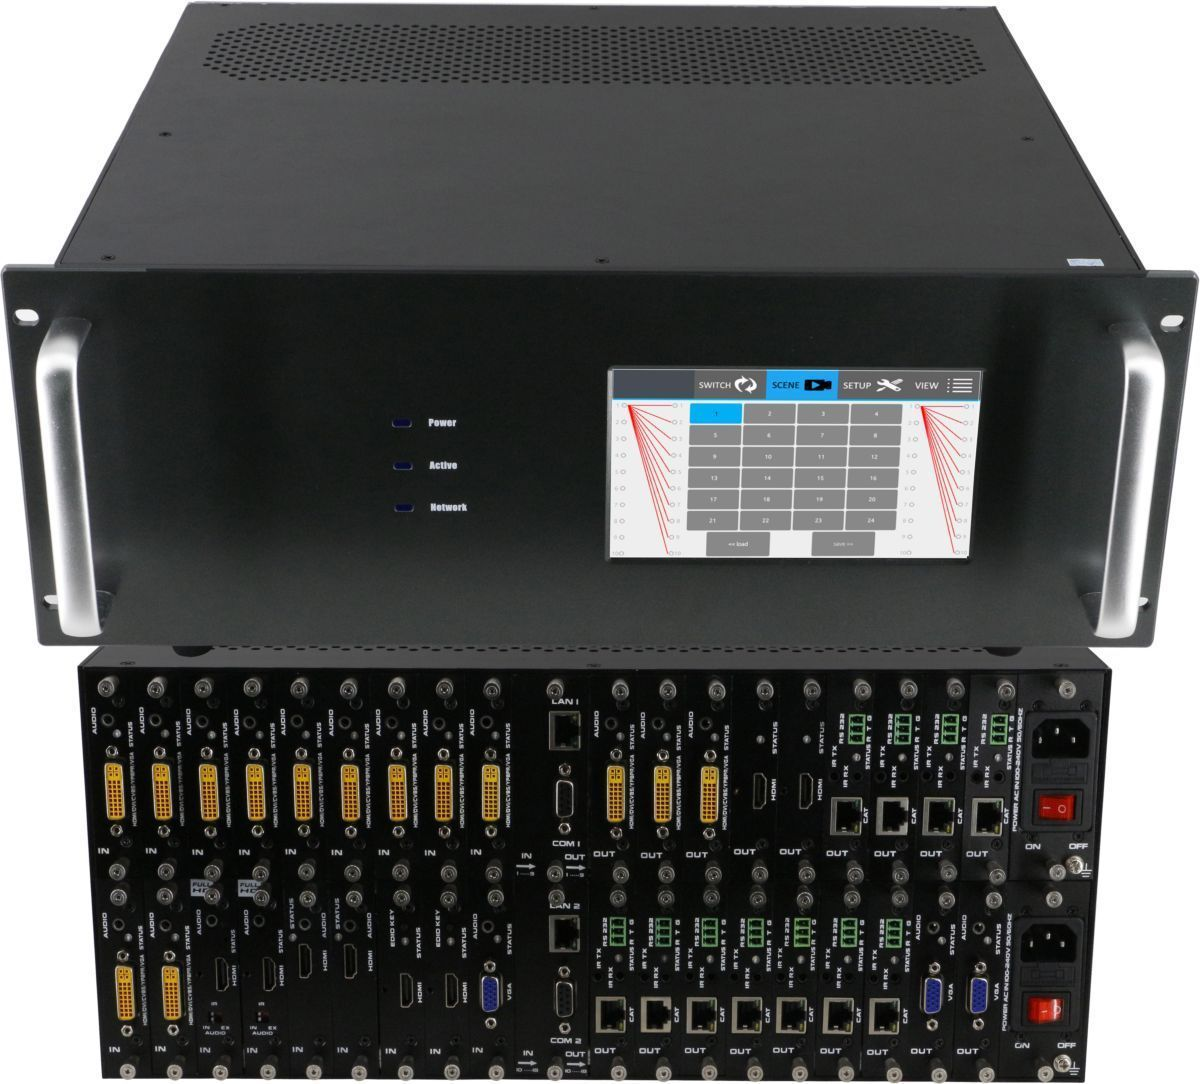 4K 4x8 HDMI Matrix Switcher with Color Touchscreen in 18x18 Chassis